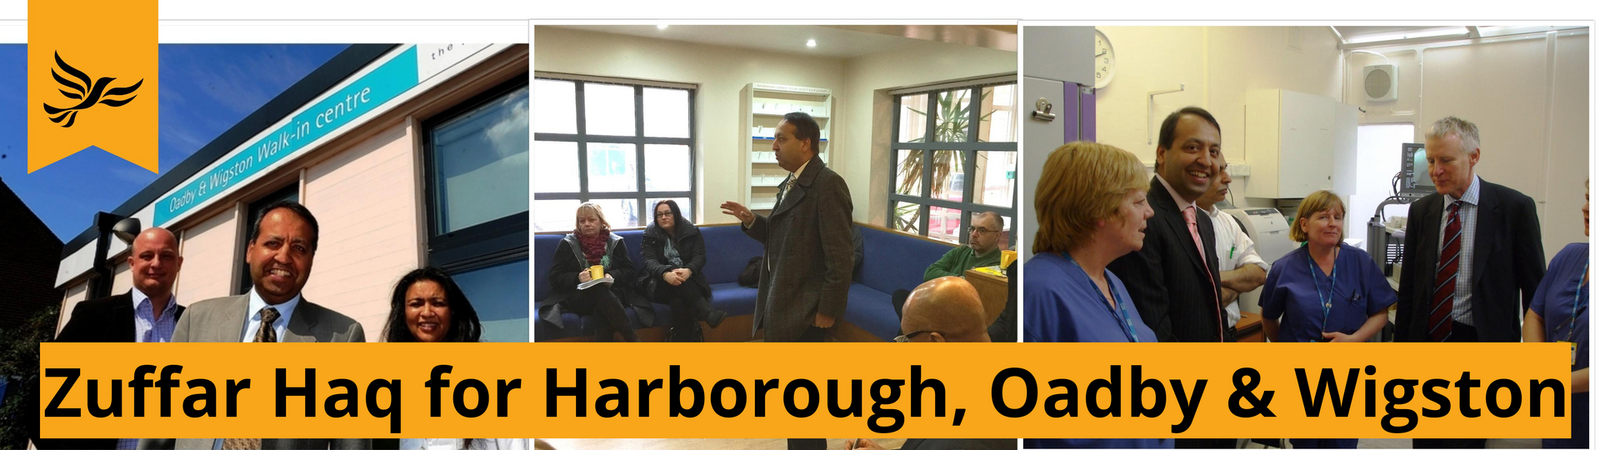 Zuffar Haq and the Lib Dems campaigning in Harborough, Oadby and Wigston